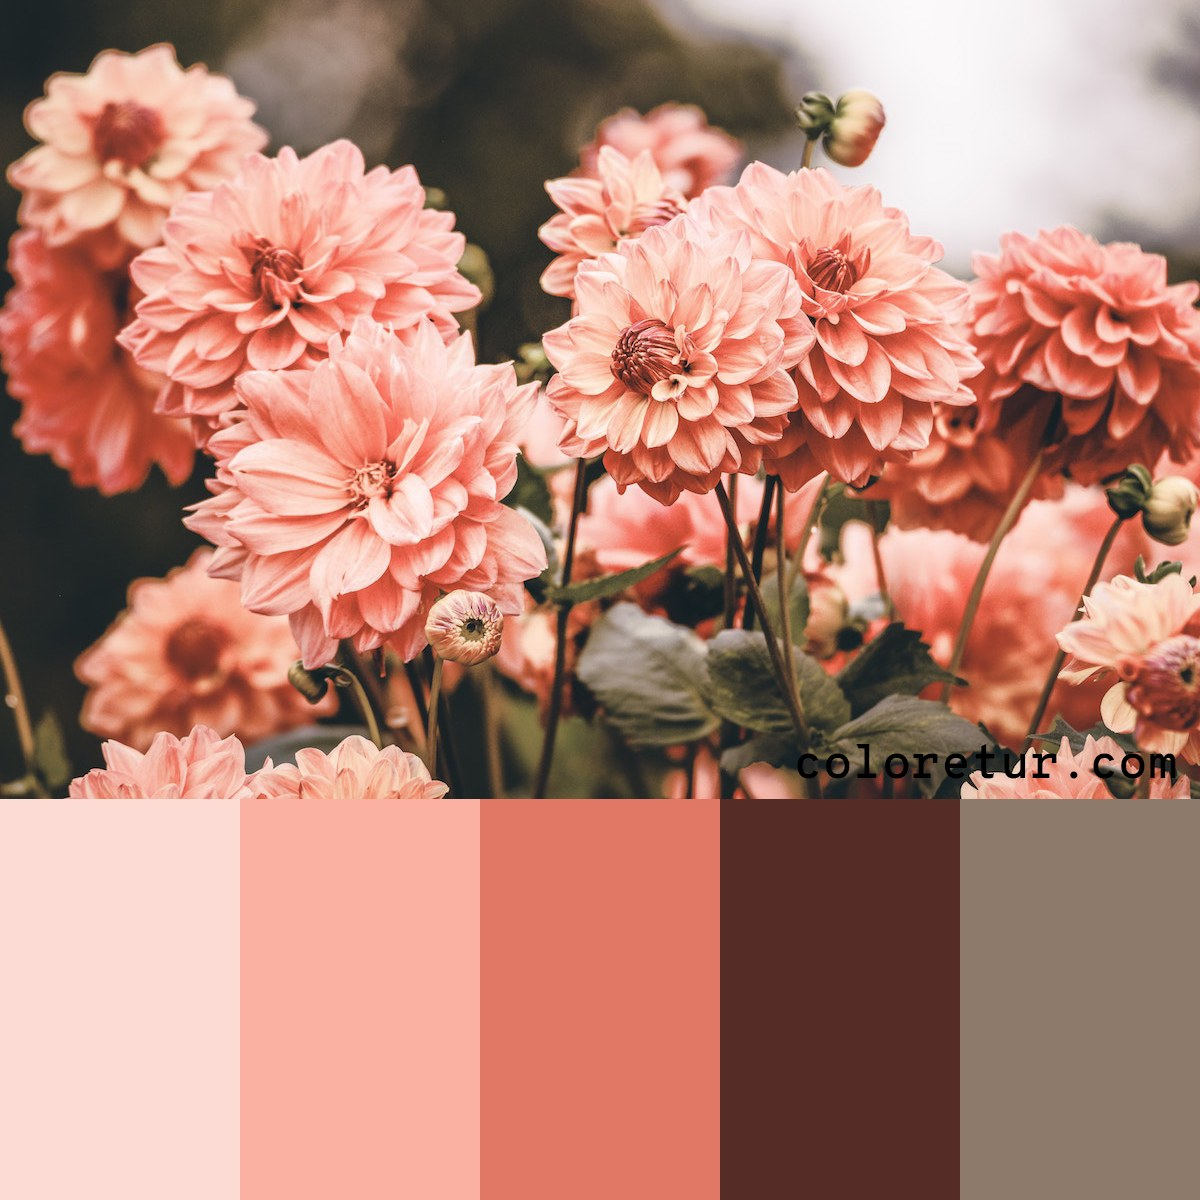 A muted color palette from pink daisies in soft dusk light.